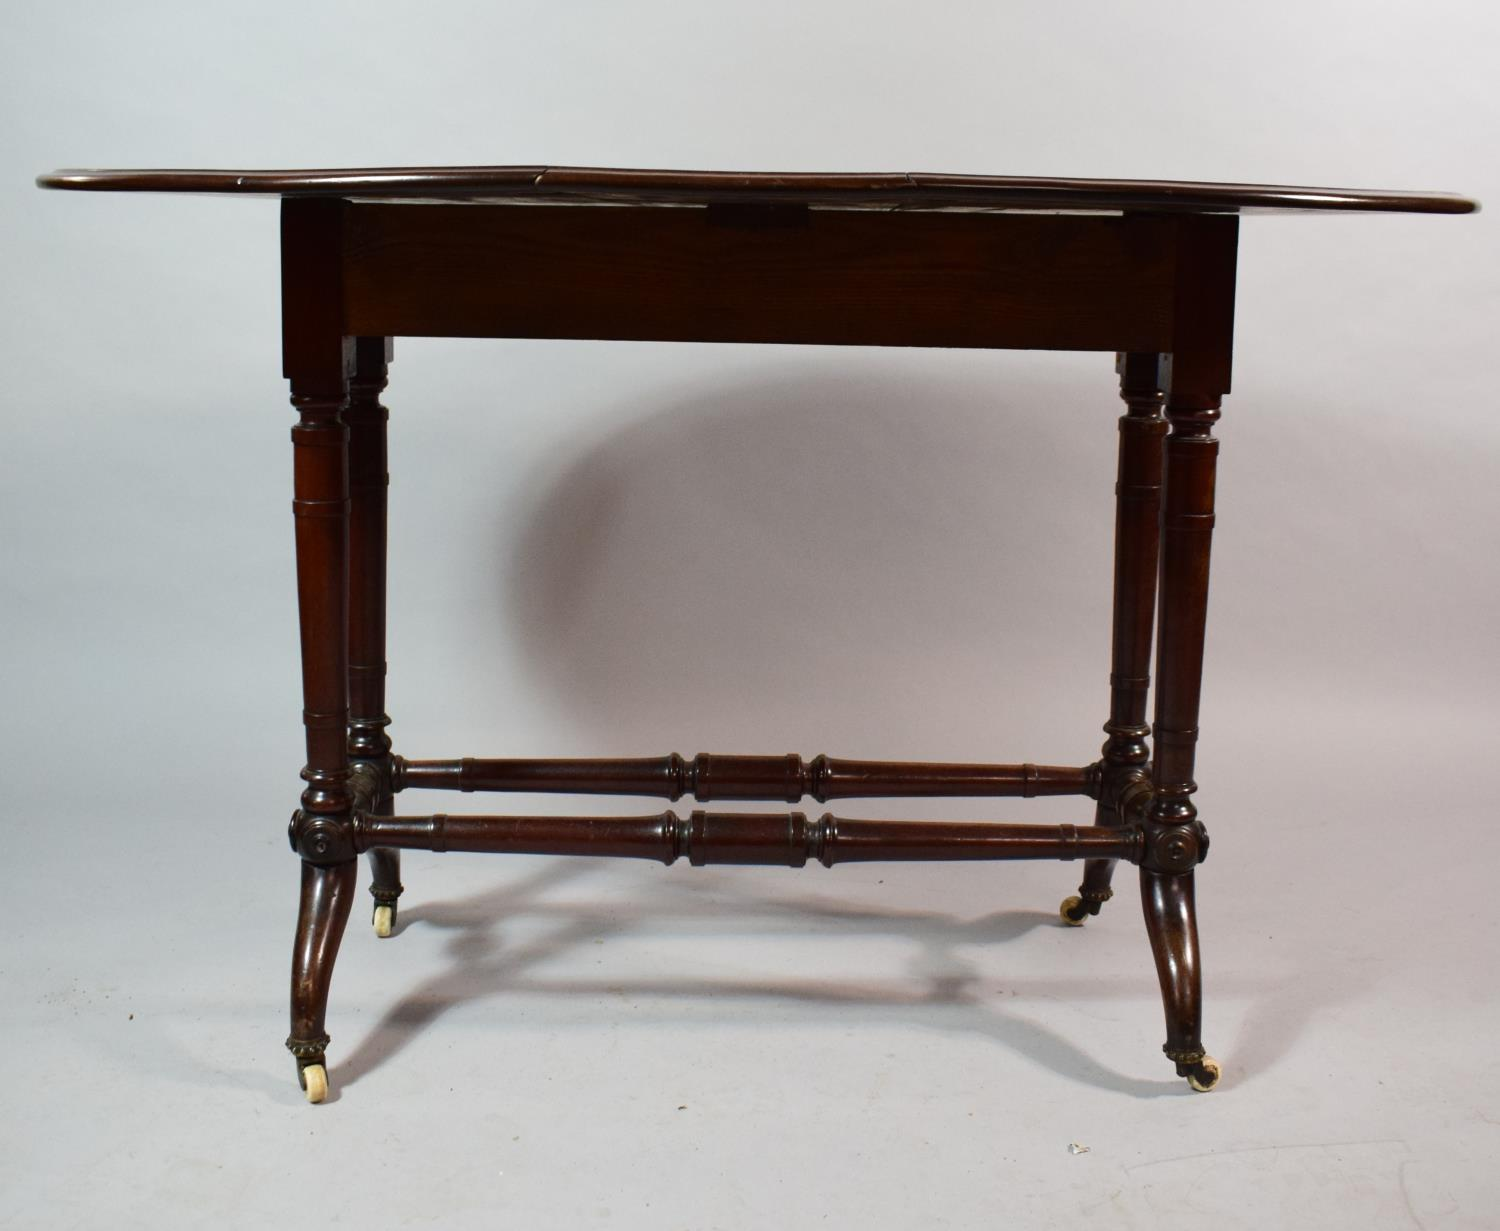 Lot 463 - A Late 19th Century Mahogany Drop Leaf Sutherland Table on Turned Supports and Stretcher. Lift and